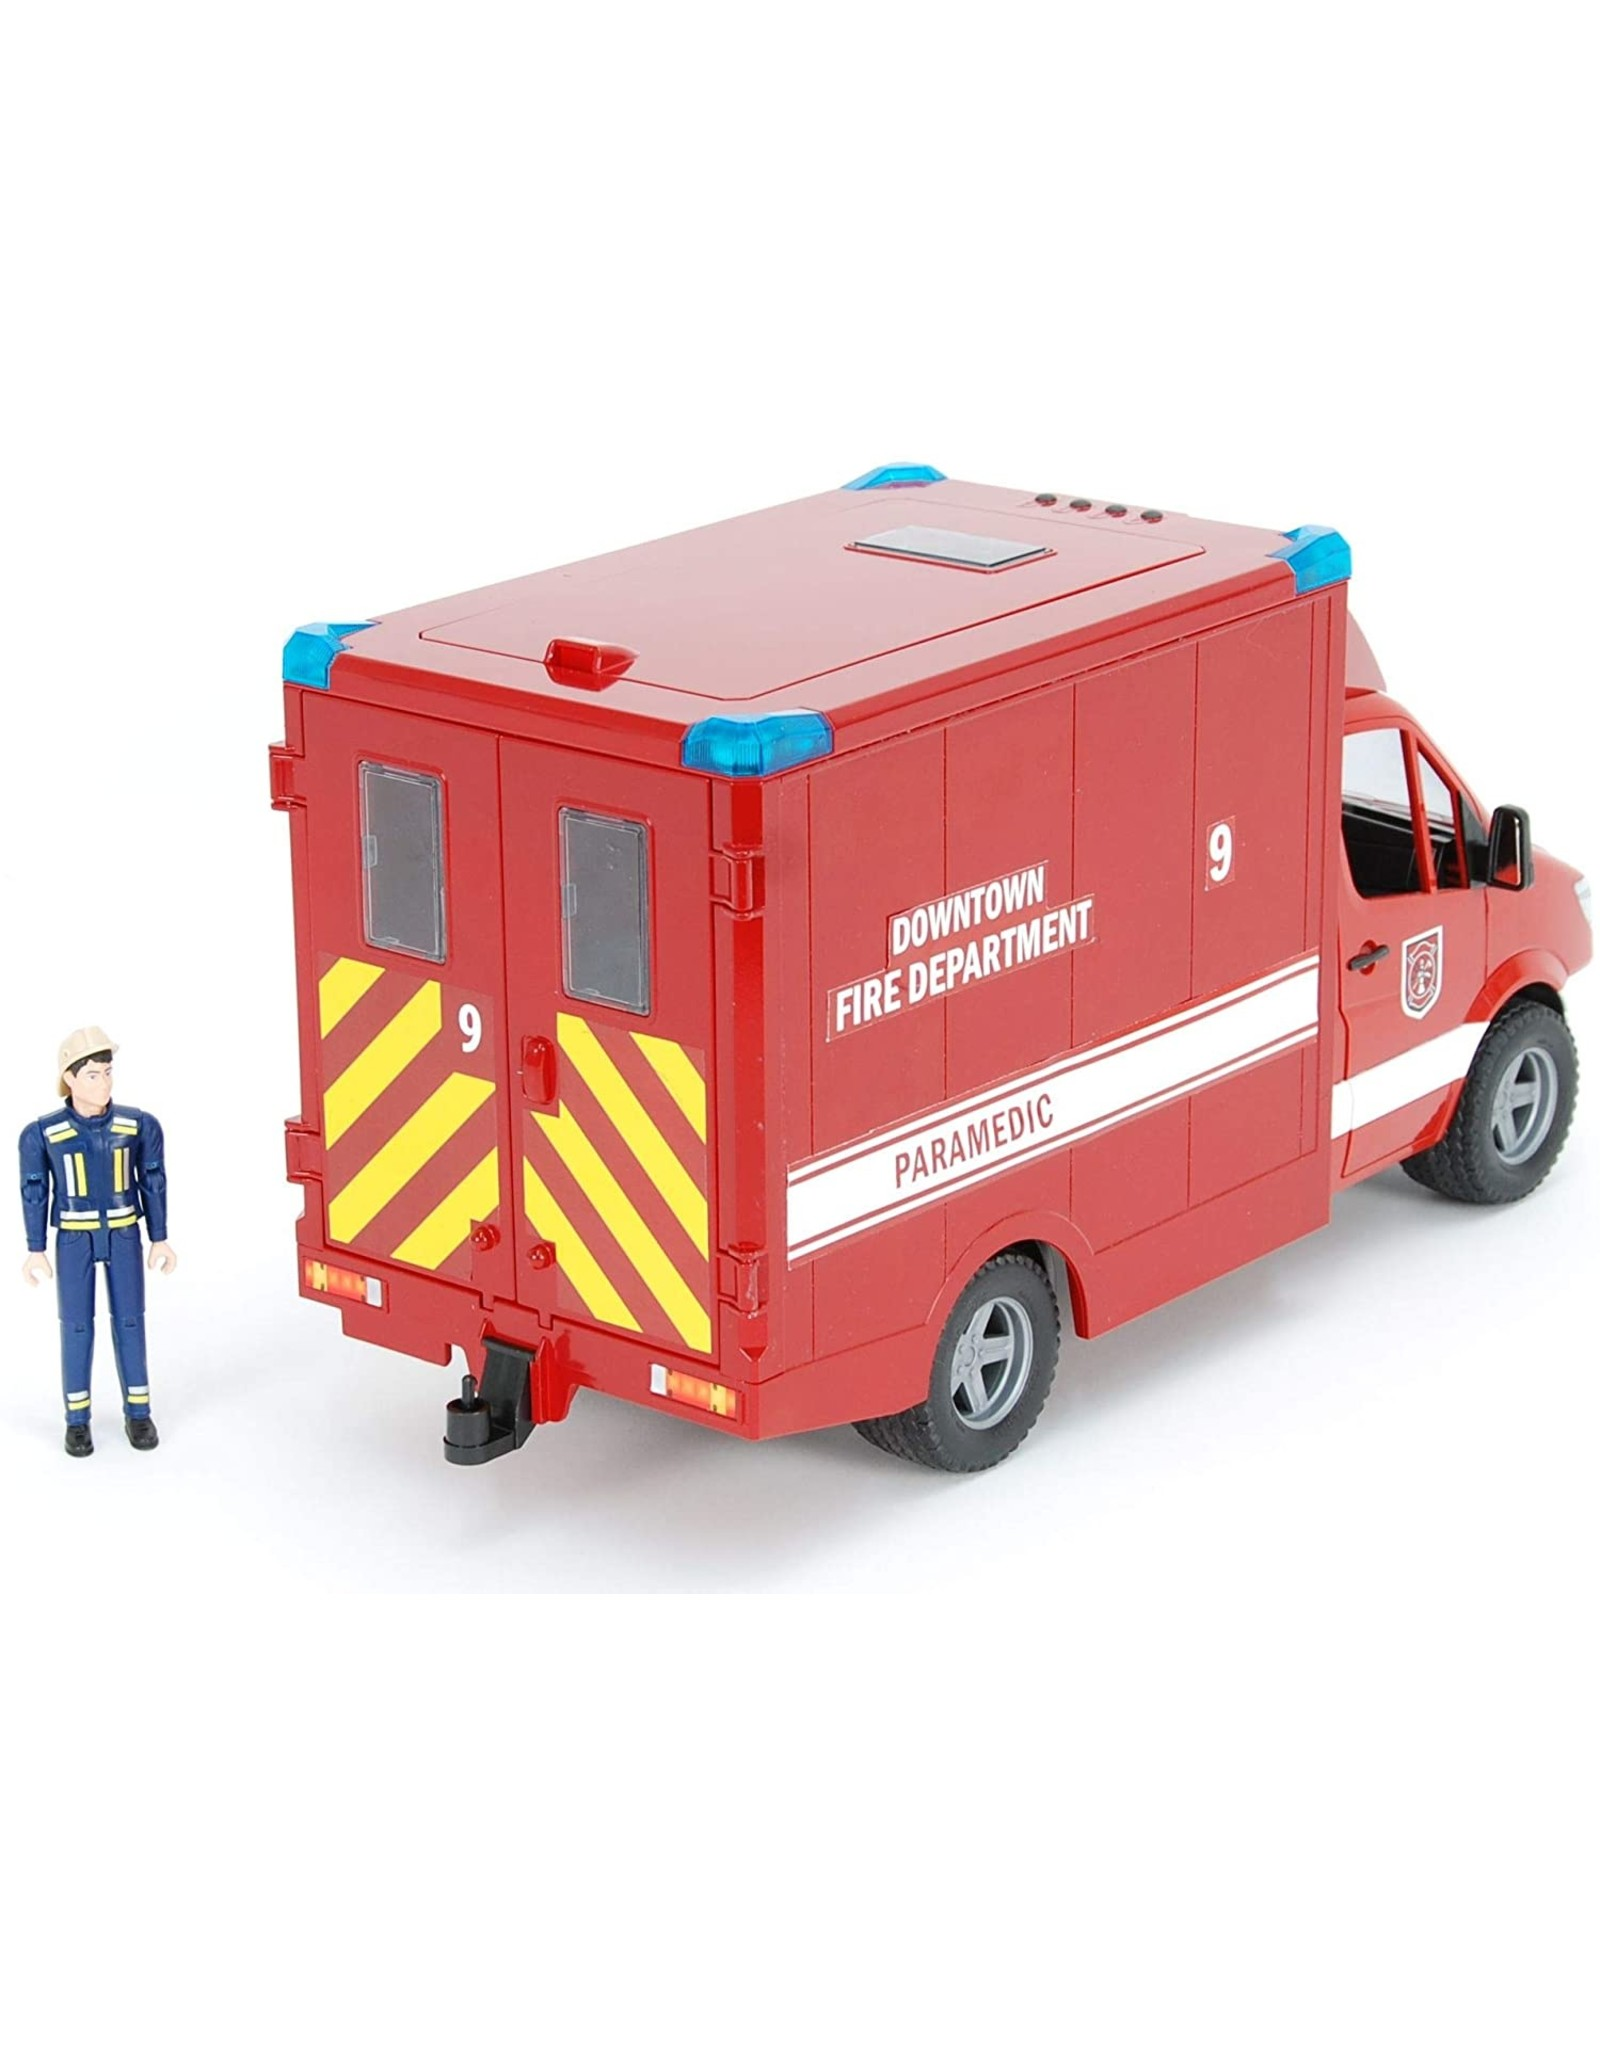 Fire Department Paramedic with Driver